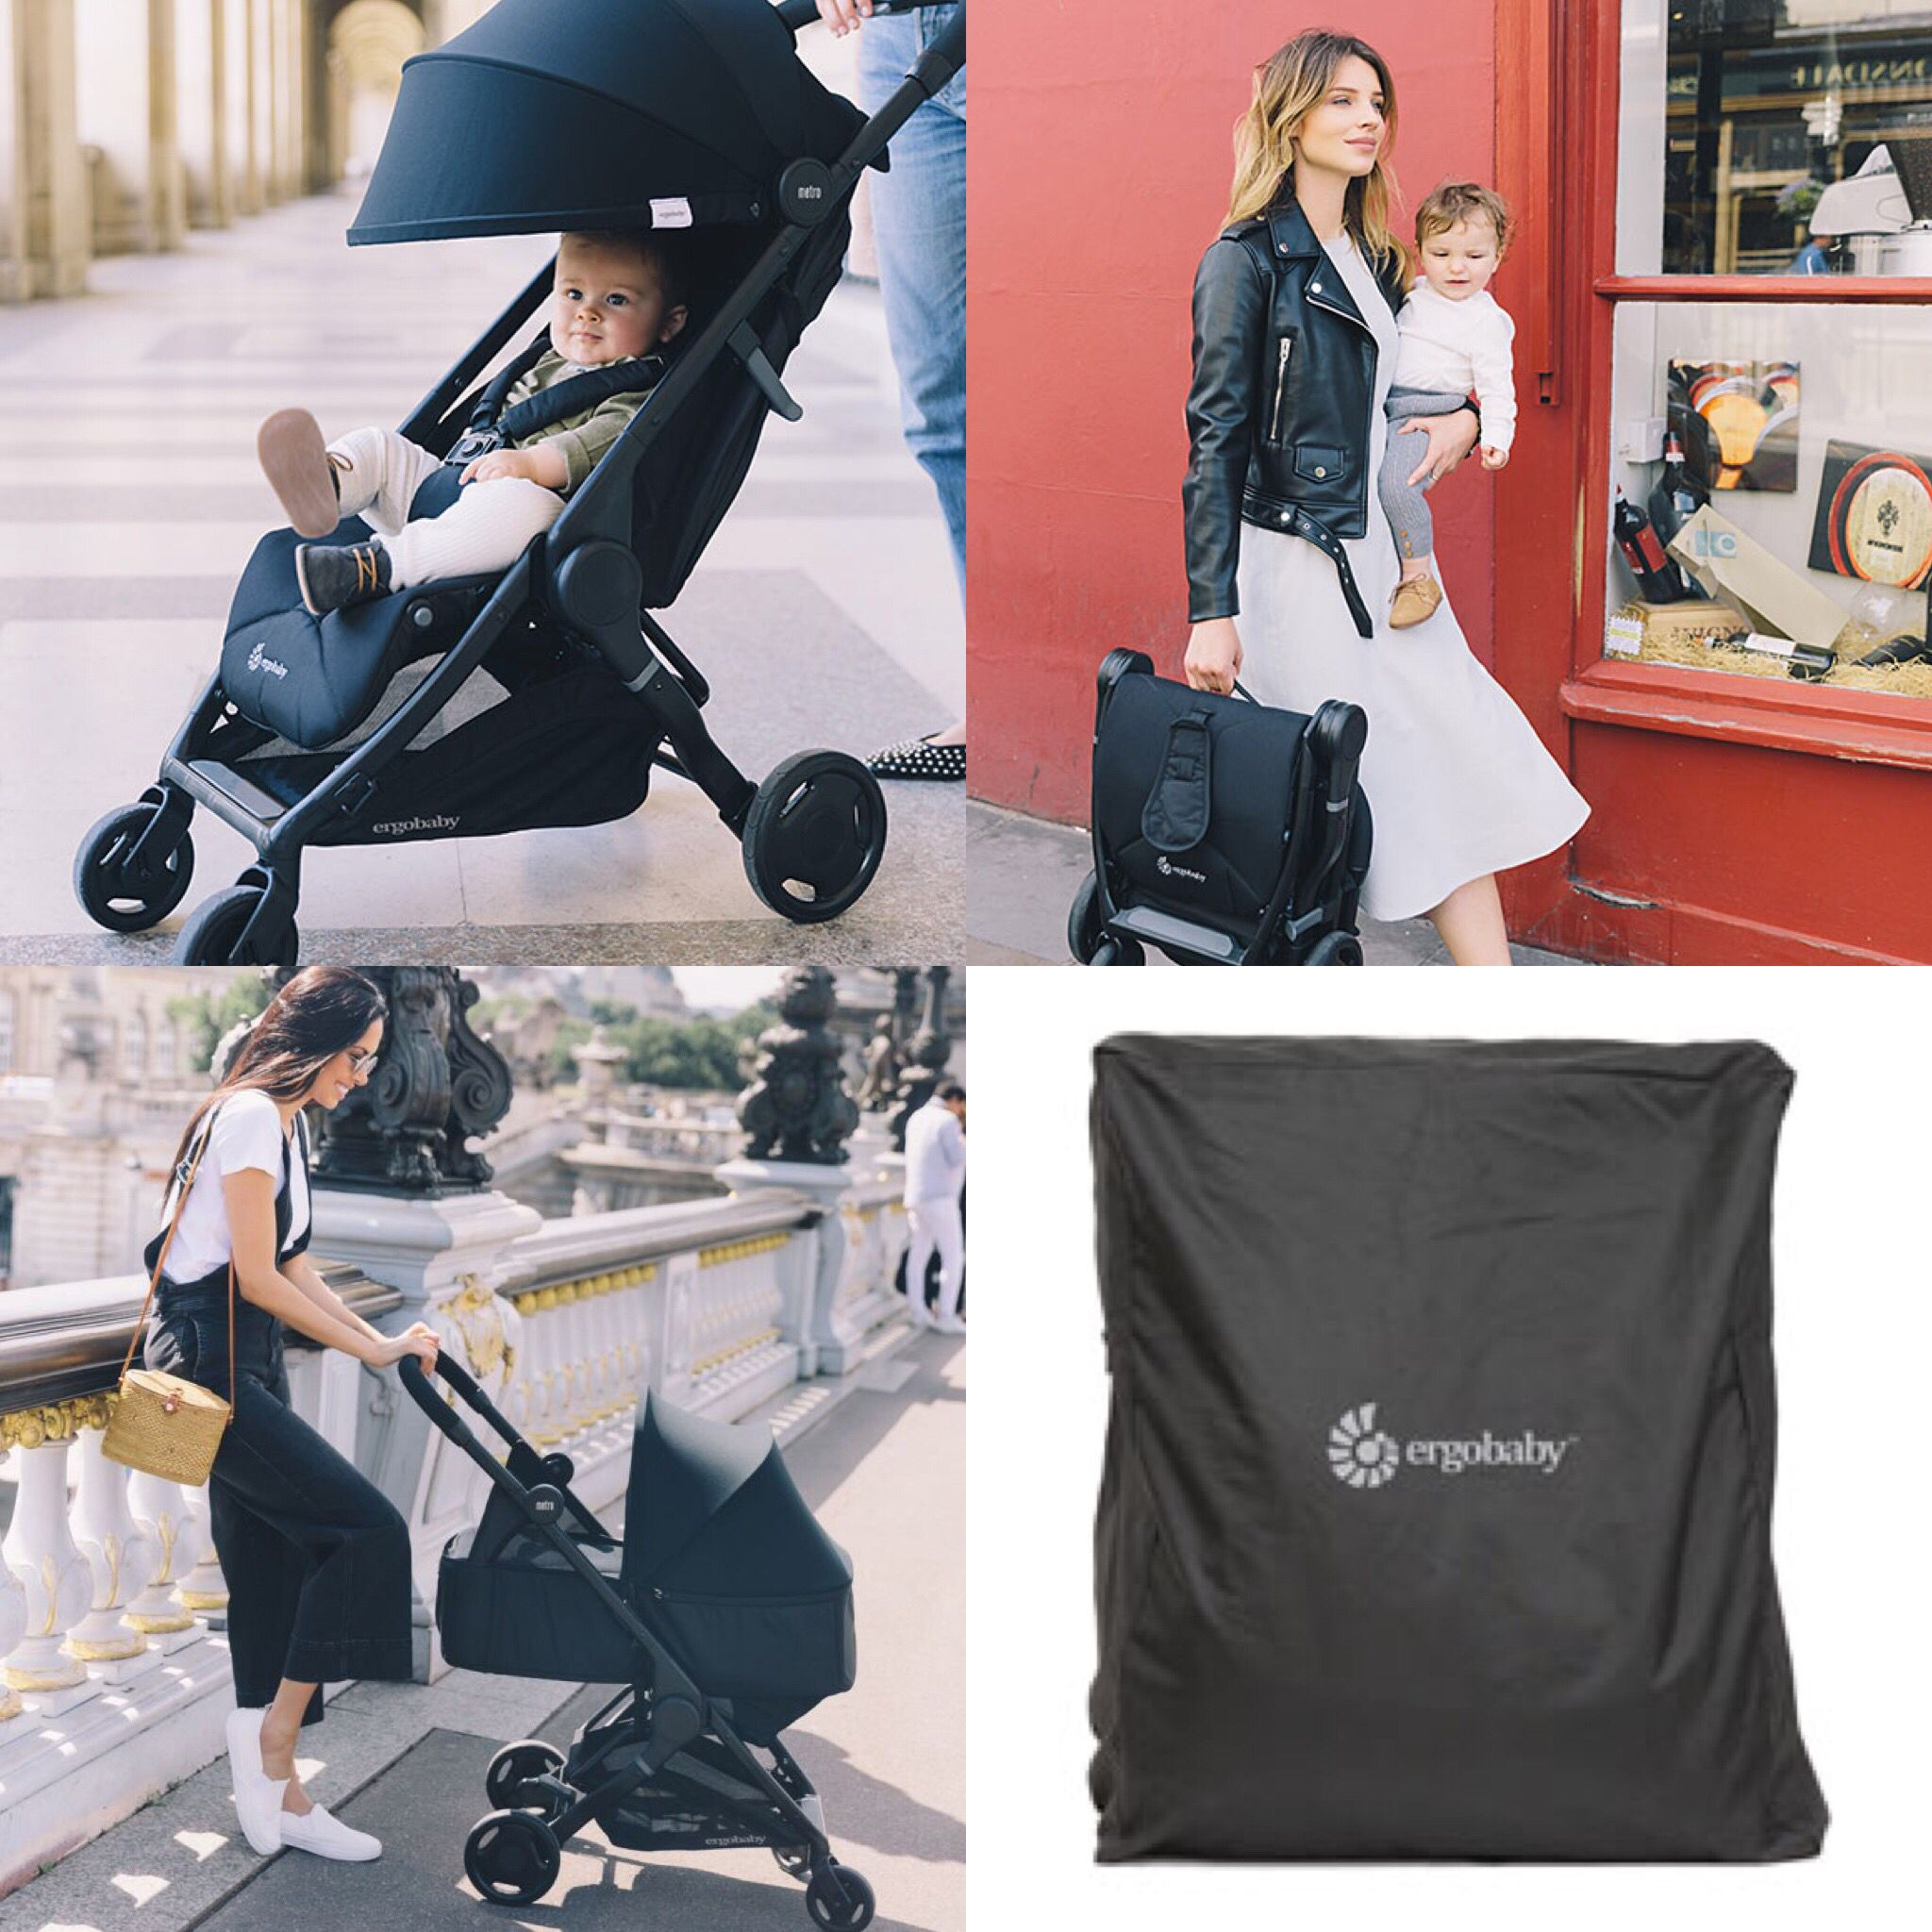 Newborn Baby Buggy Reviews Checkout My Review Of The Ergobaby Metro Compact City